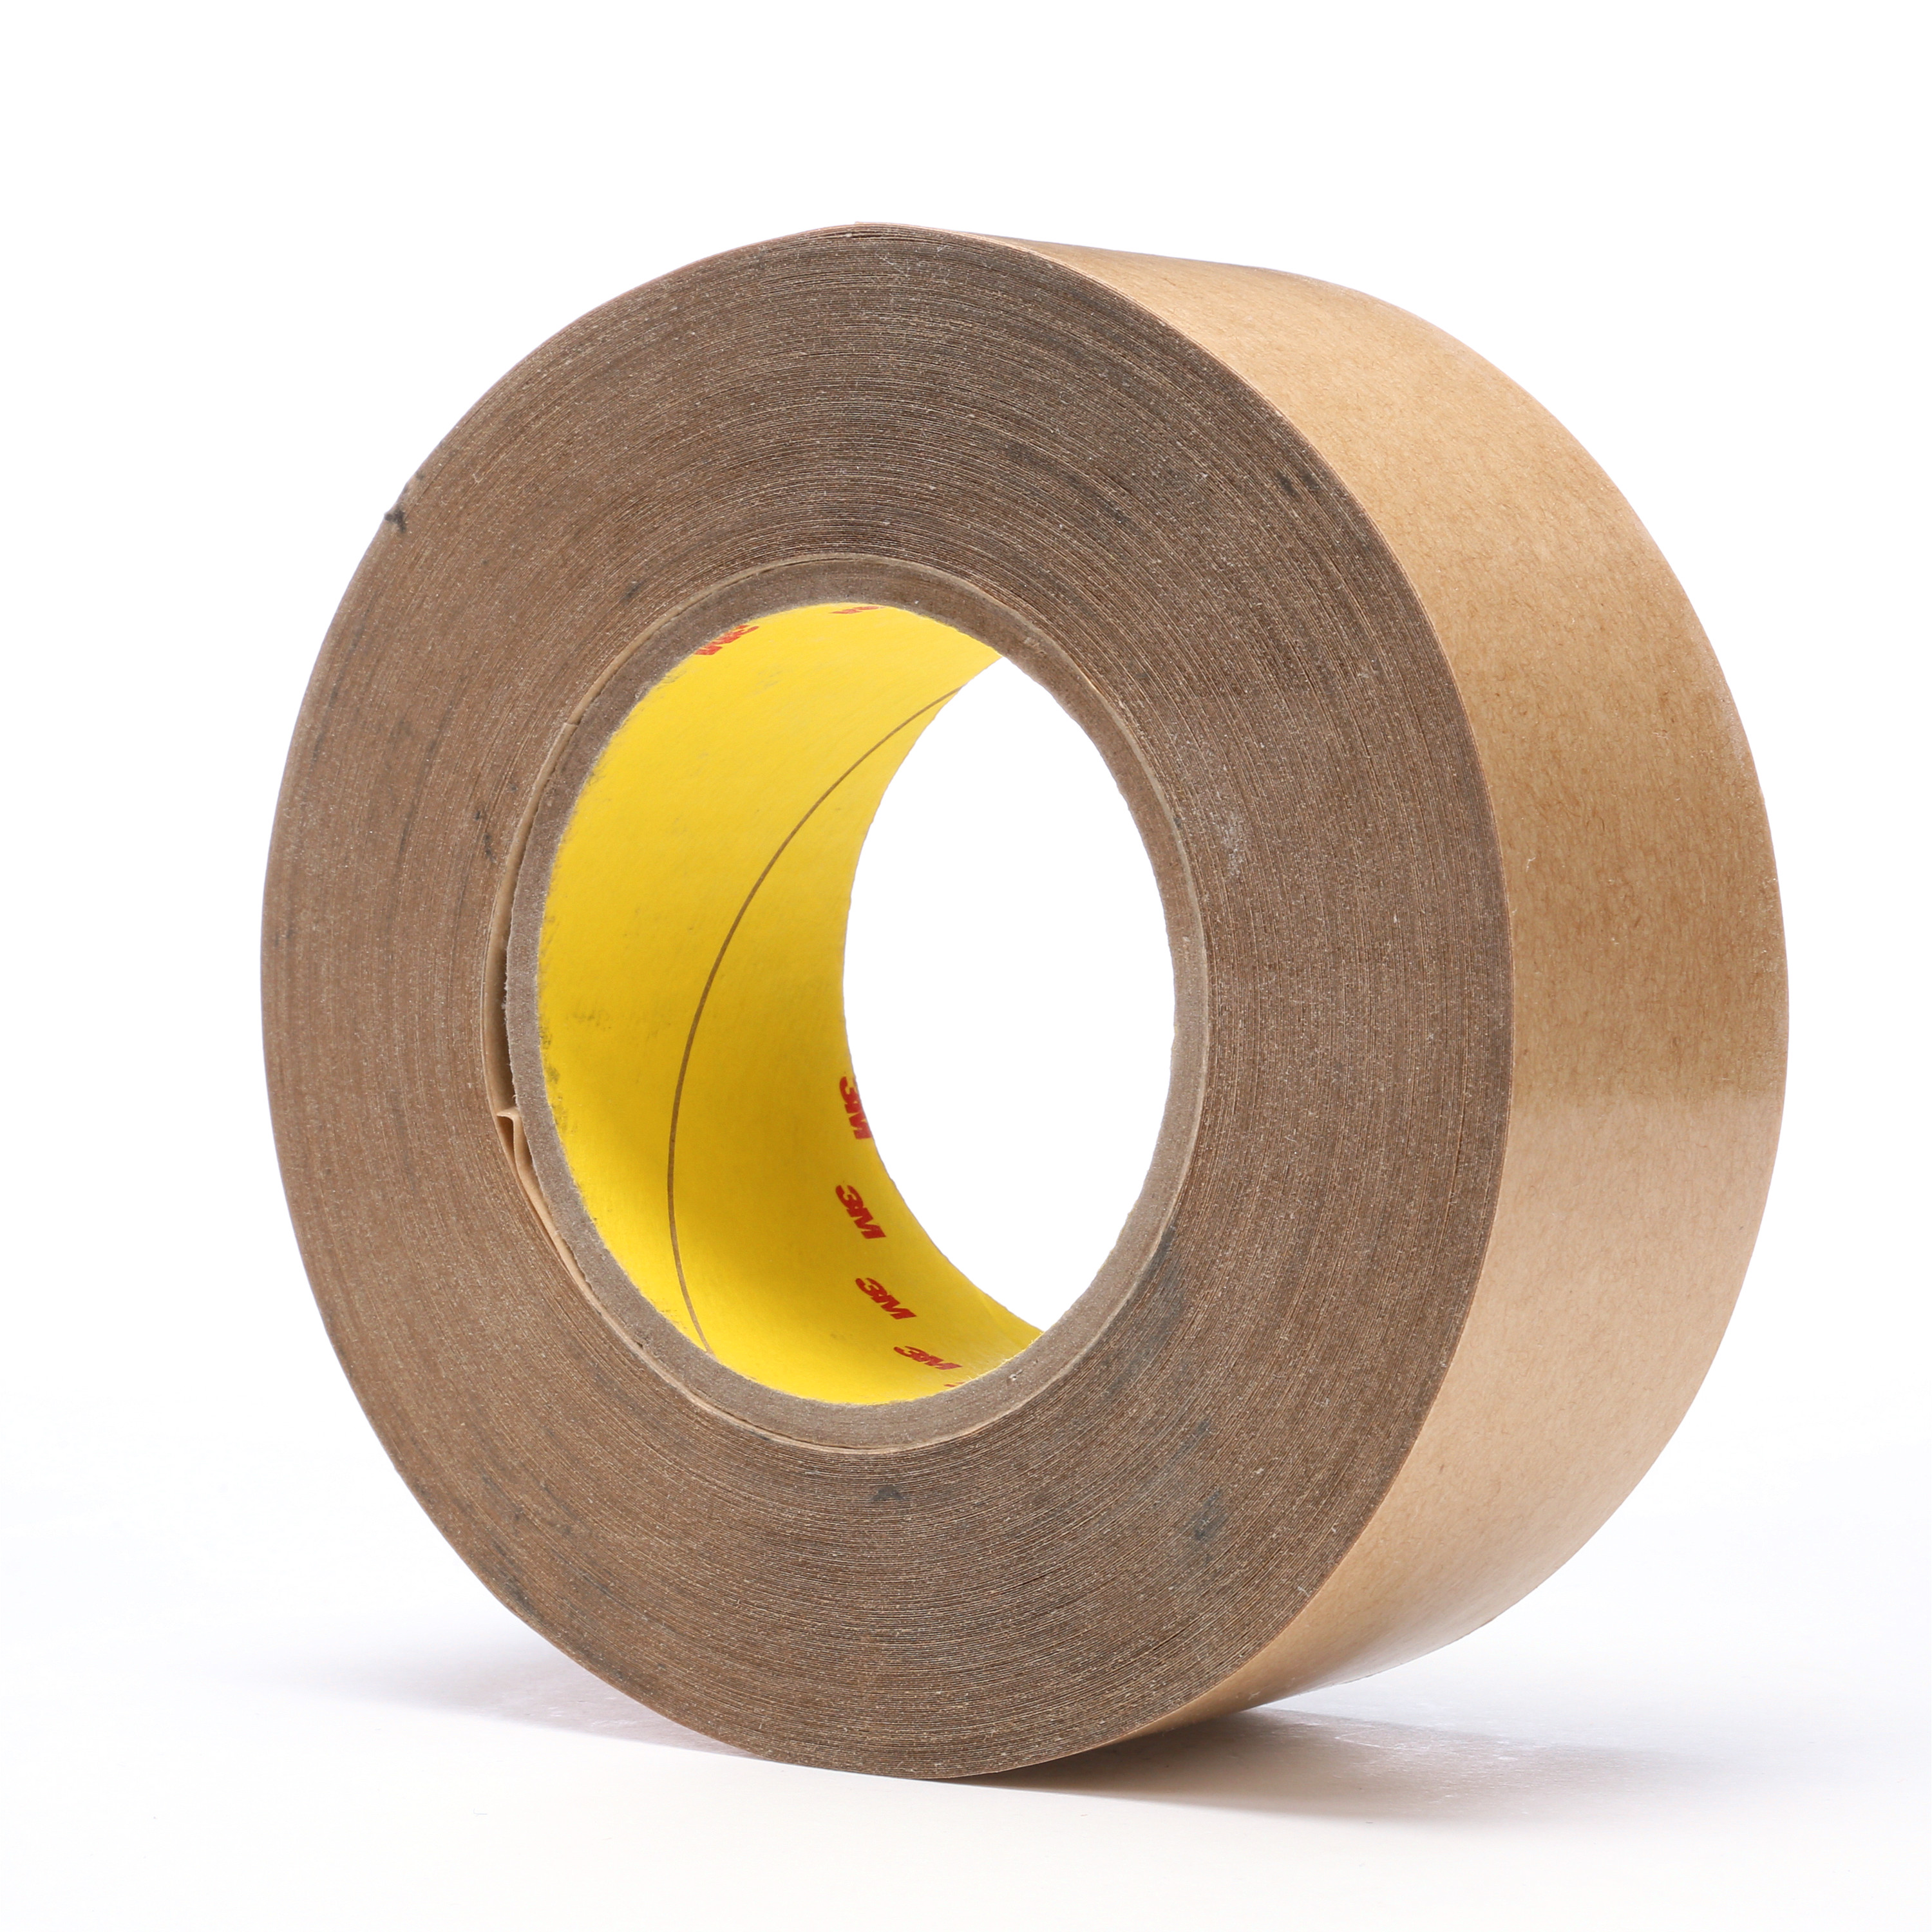 3M™ Adhesive Transfer Tape 950, Clear, 2 in x 60 yd, 5 mil, 24 rolls per case